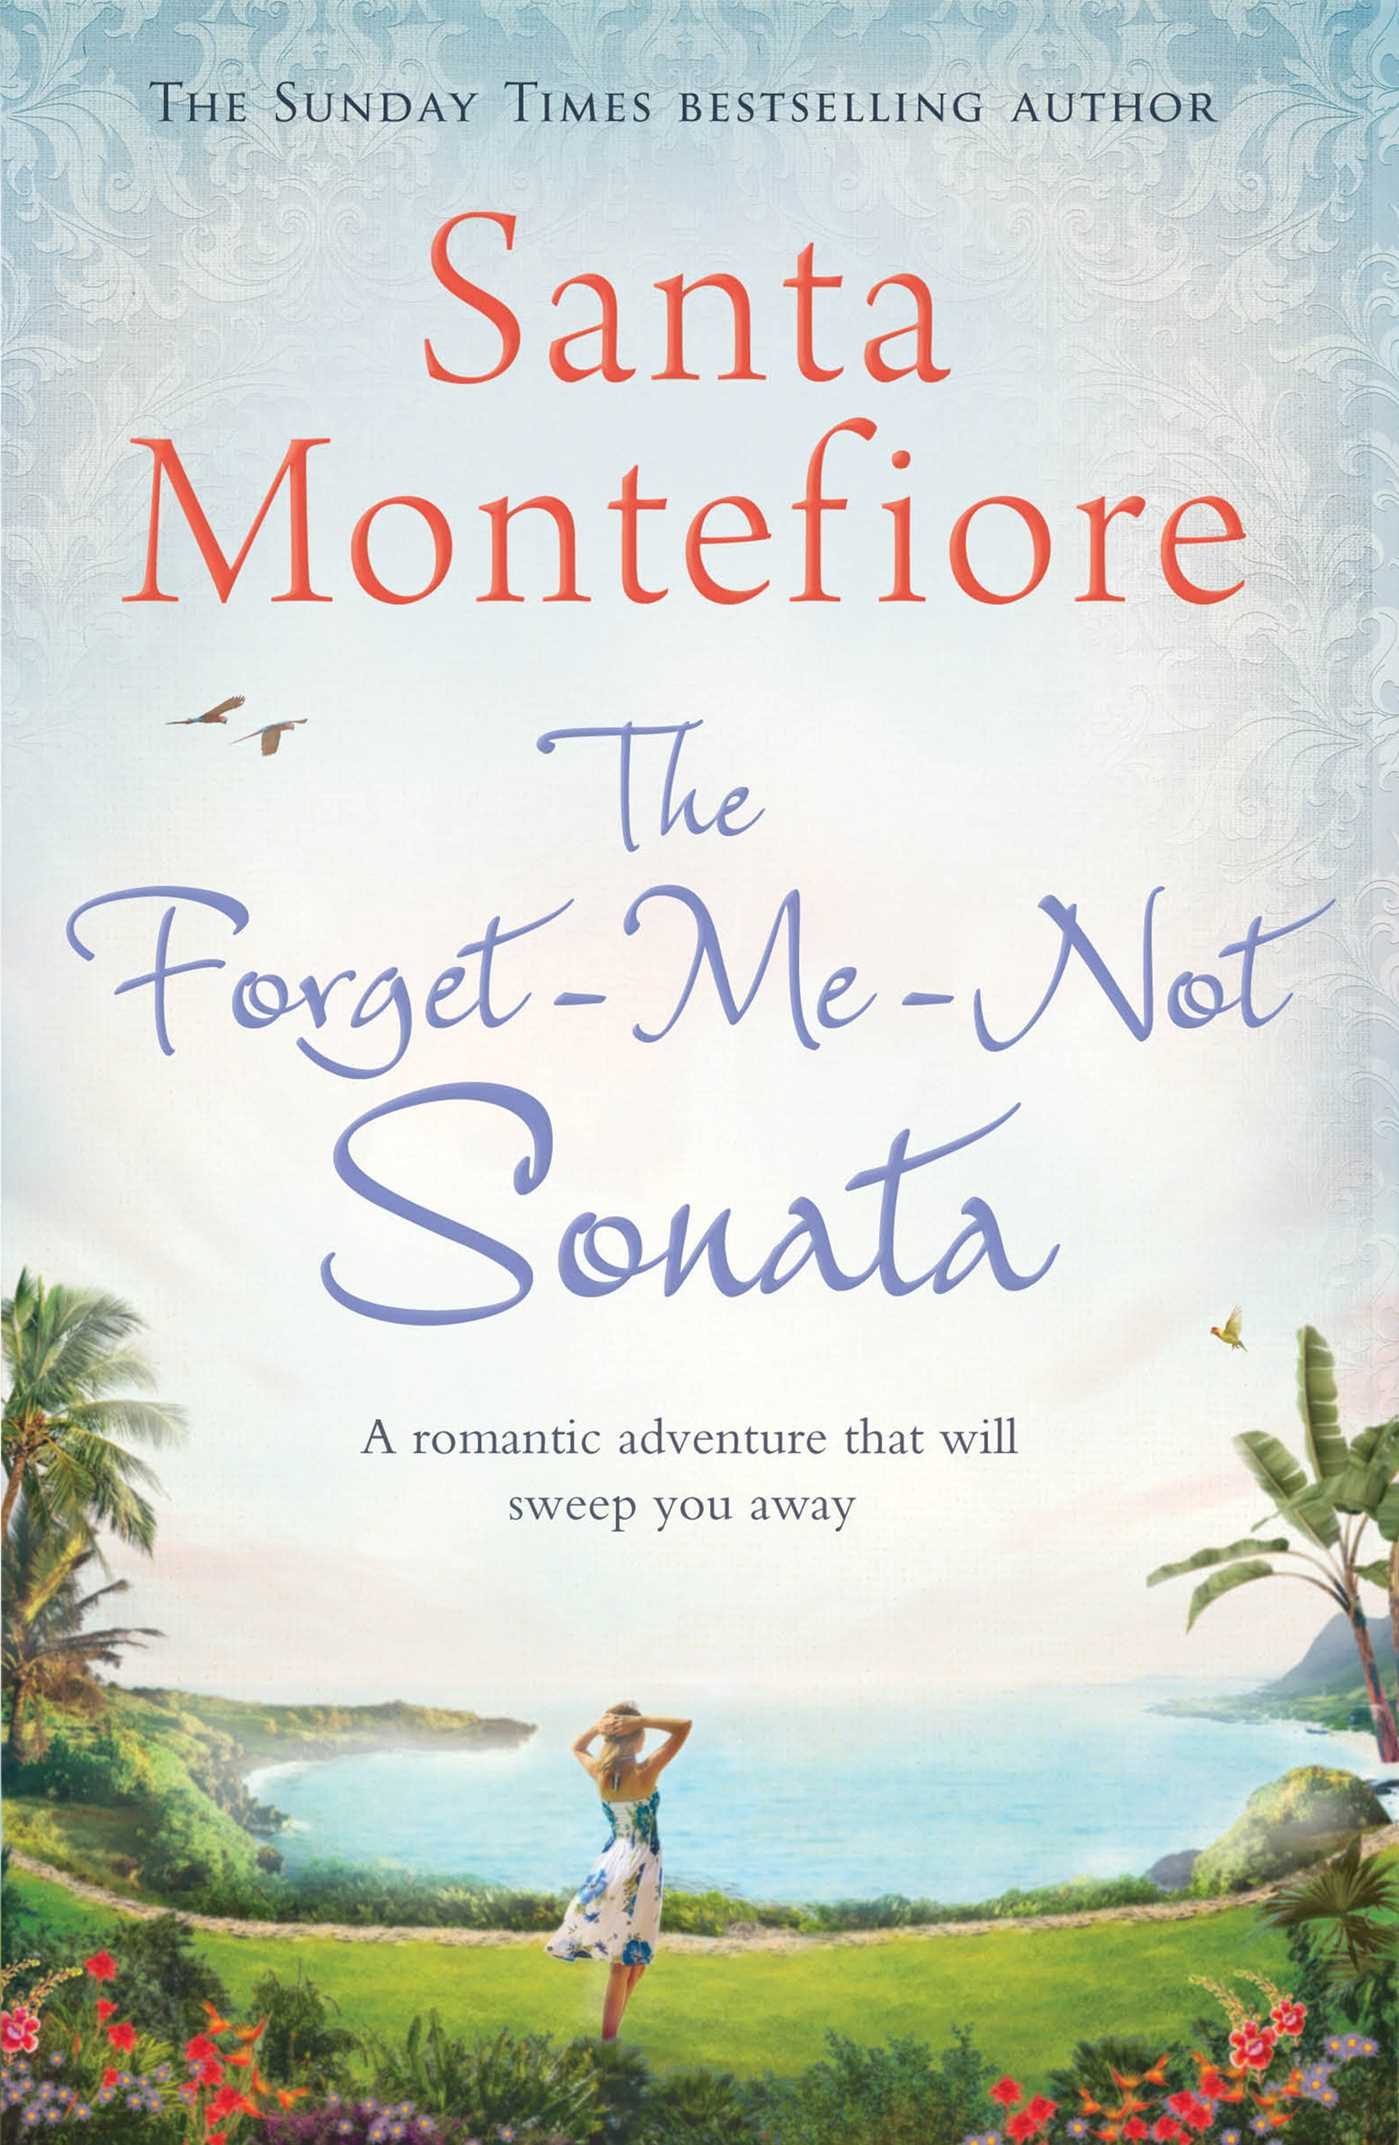 Santa montefiore official publisher page simon schuster uk book cover image jpg the forget me not sonata ebook 9781471132094 fandeluxe Ebook collections